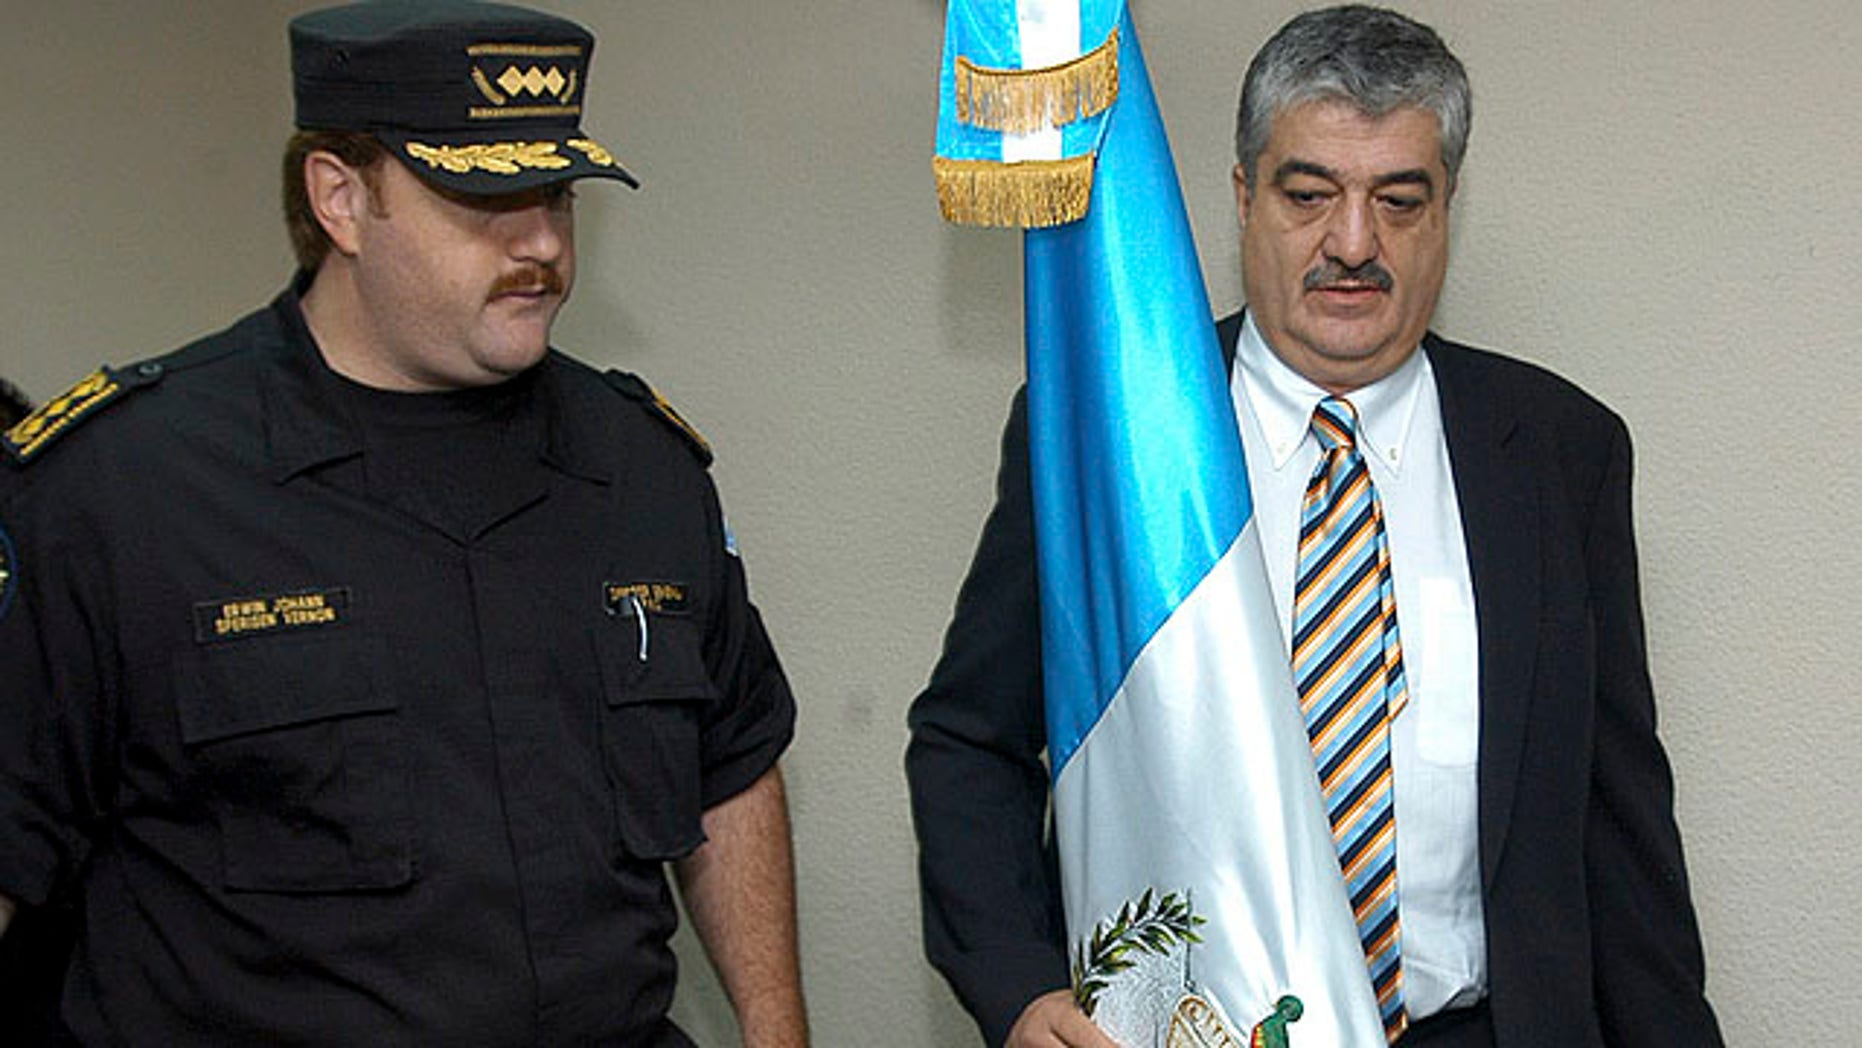 Photo taken on November 12, 2005 showing the then Interior Minister of Guatemala Carlos Vielman, right, with  Guatemala Chief of Police Edwin Sperinsen. Spanish police say they have arrested former Guatemalan Interior Minister Carlos Vielman wanted in connection with the alleged killing of seven prisoners in 2006.